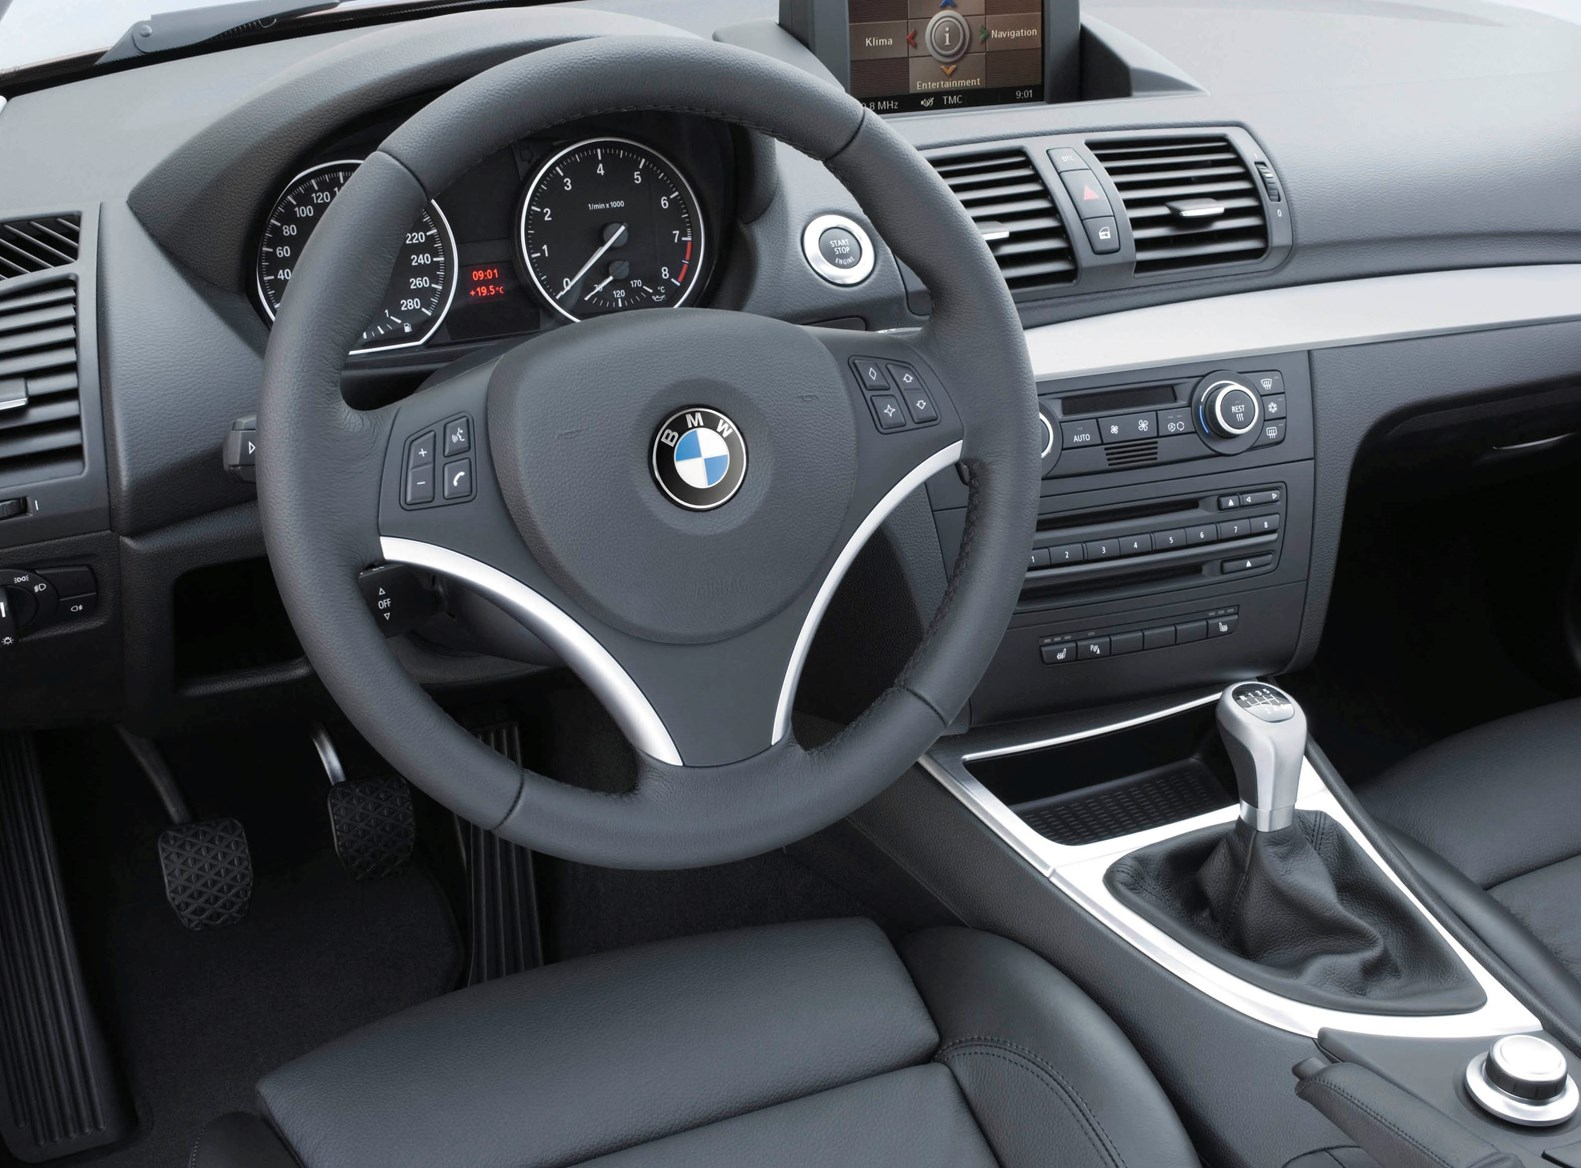 BMW 1 Series Coupe Review 2007